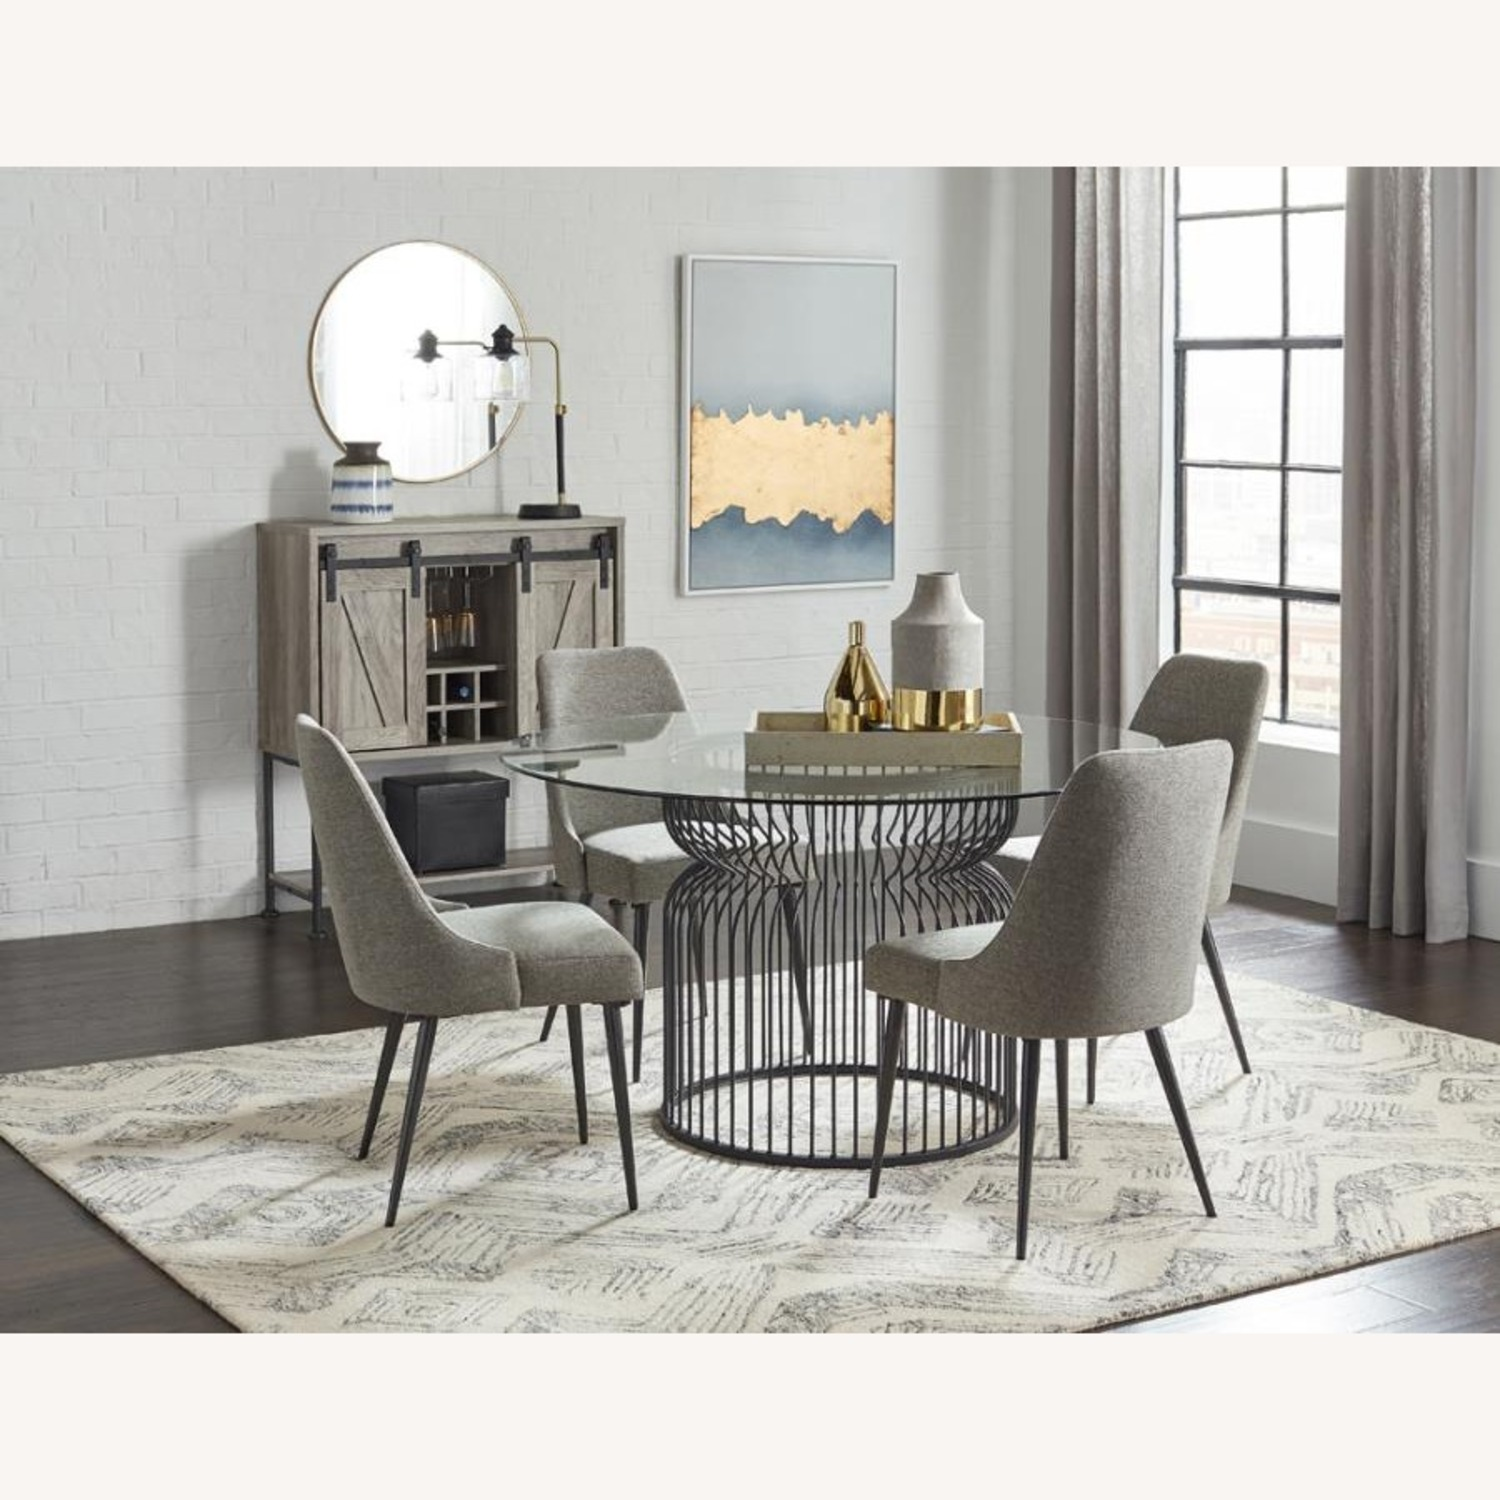 Dining Table In Gunmetal Base W/ Glass Top - image-1